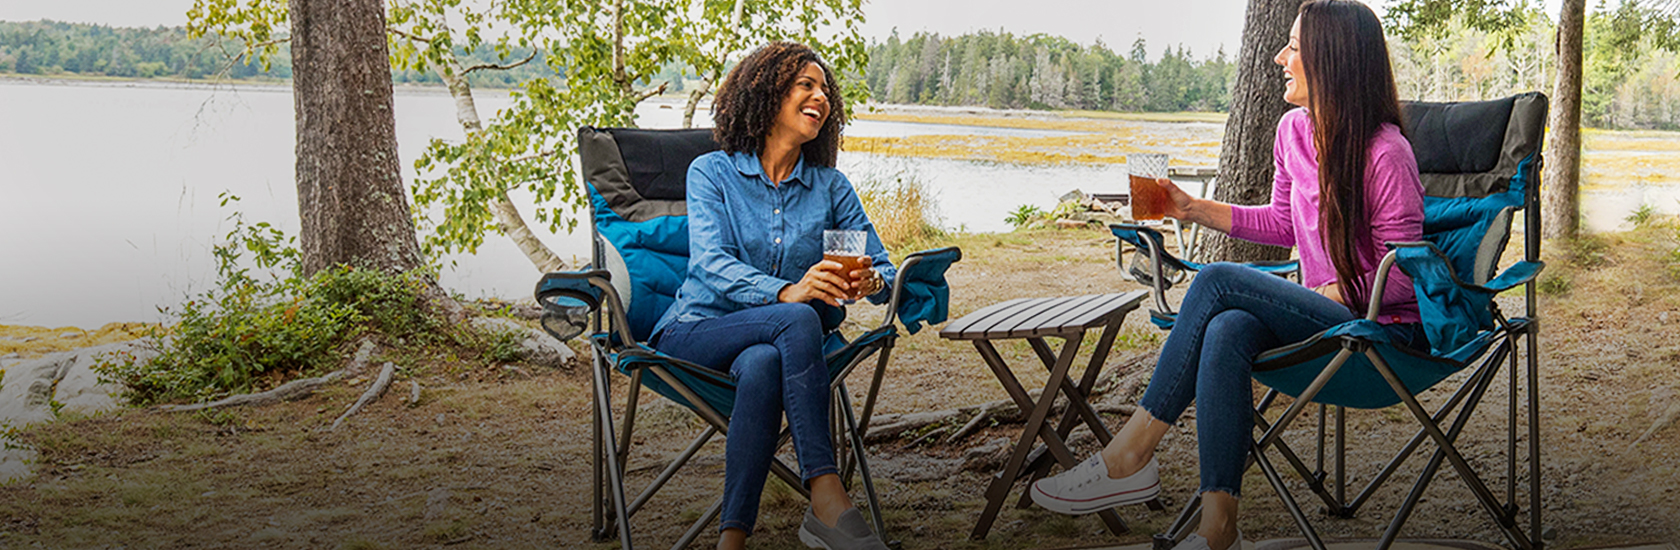 Sit Back, Relax & Save up to 40% on Outdoor Chairs & Recliners